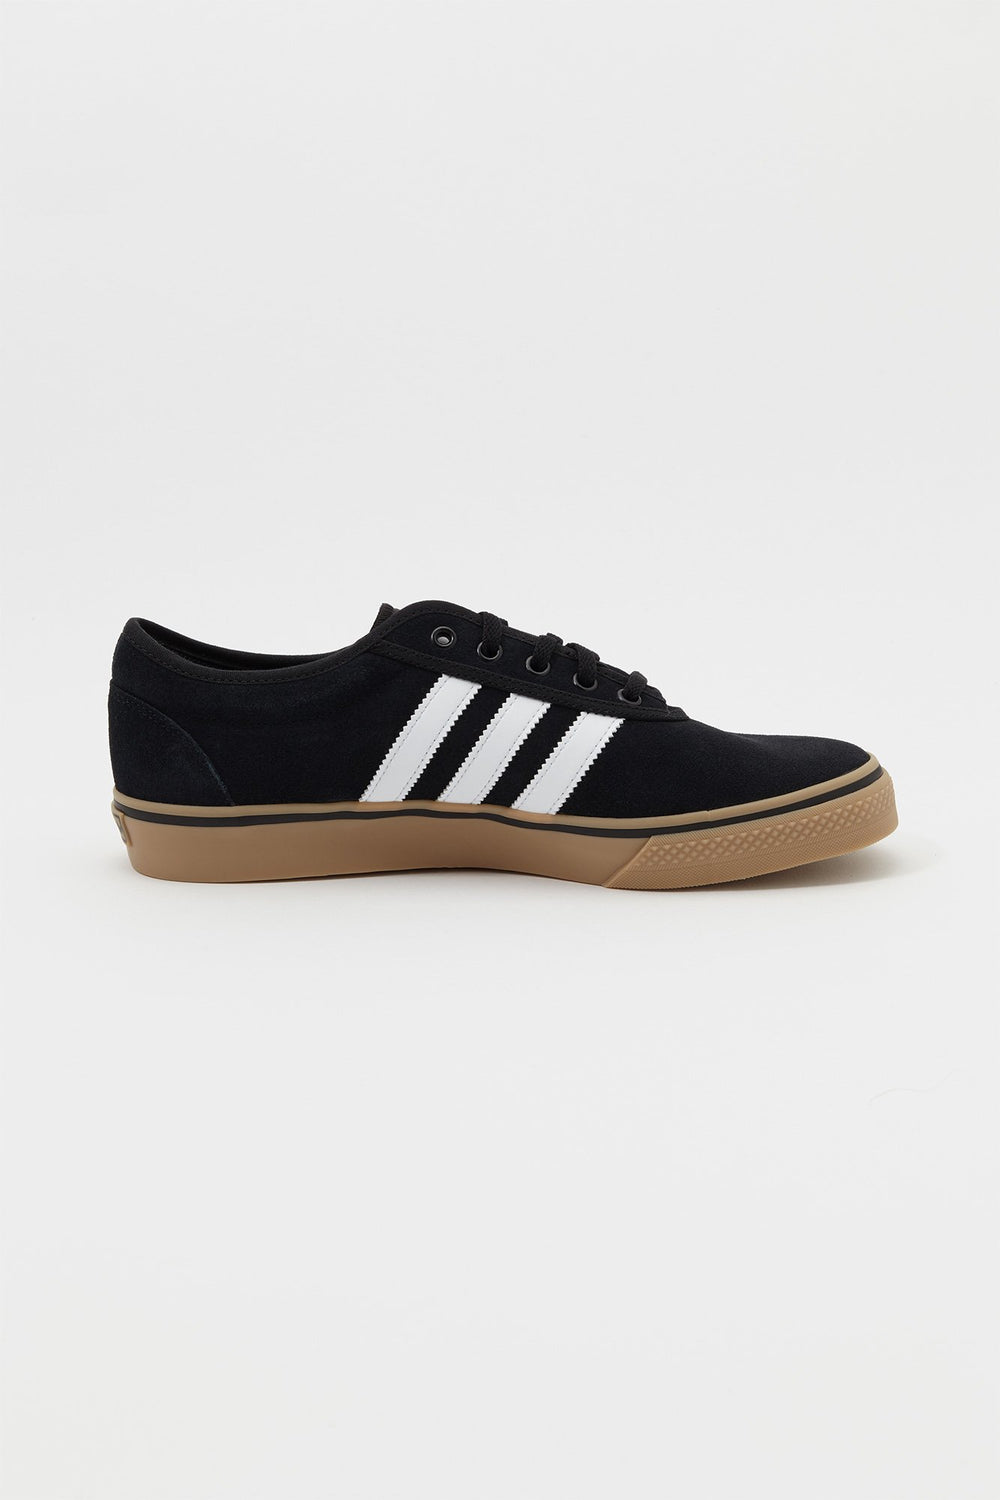 Adidas Mens Adi-Ease Skate Shoes Pure Black